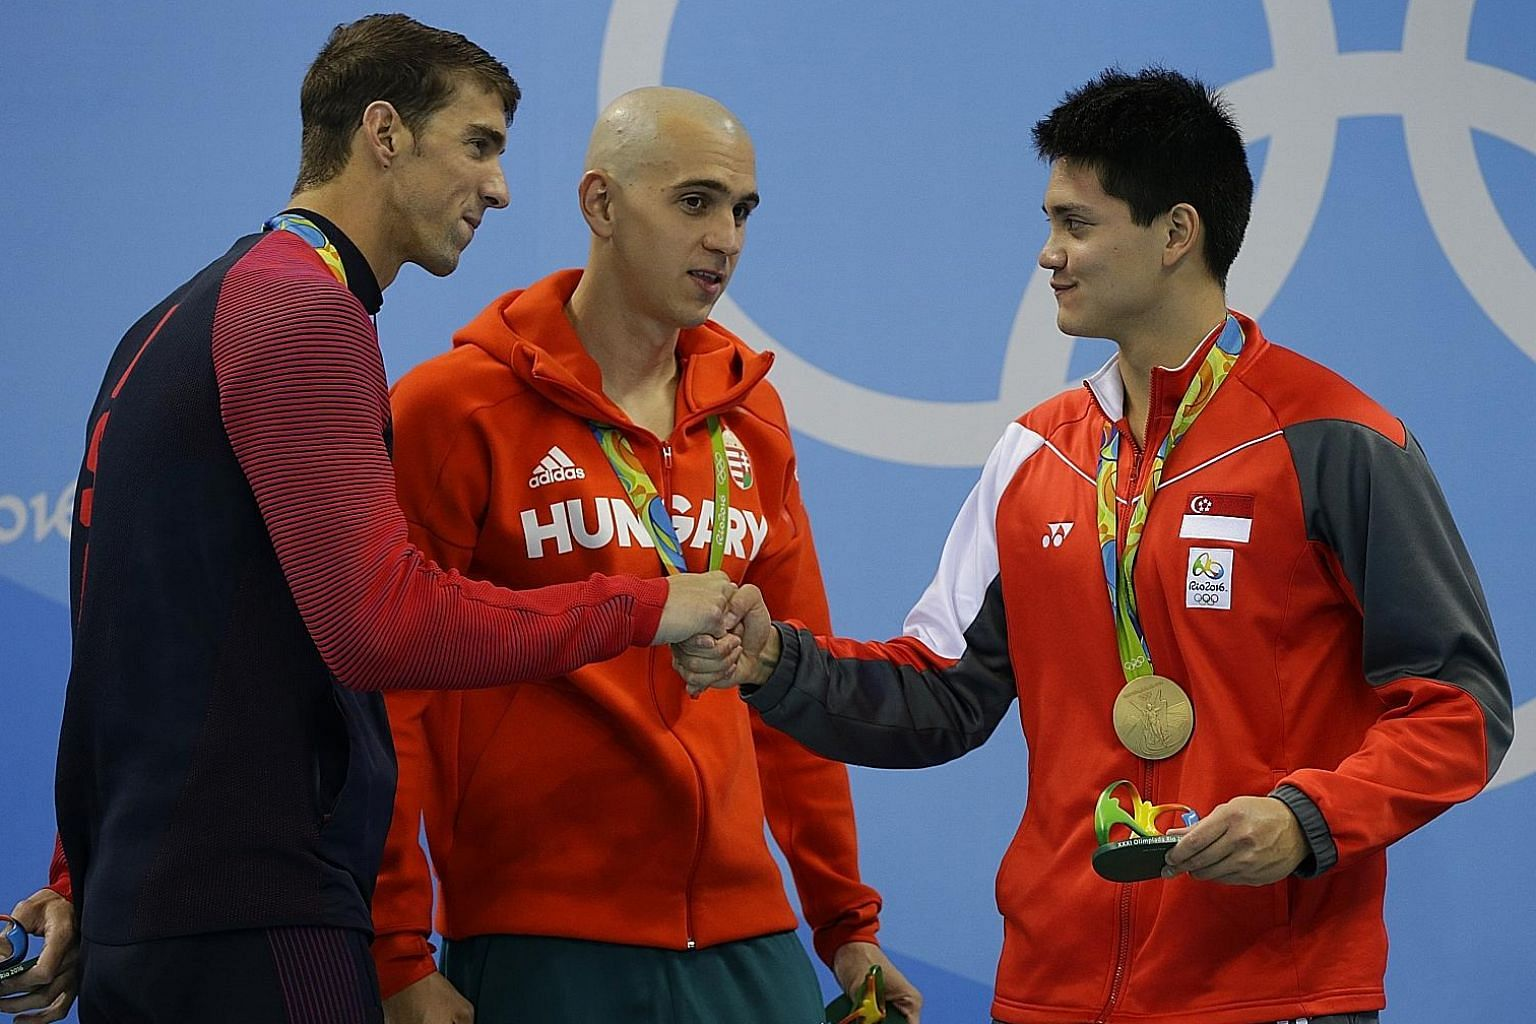 Joseph Schooling, then only 13 in 2008, posing with Michael Phelps. Eight years later, he beat his idol in Rio to win Singapore's first Olympic gold medal.